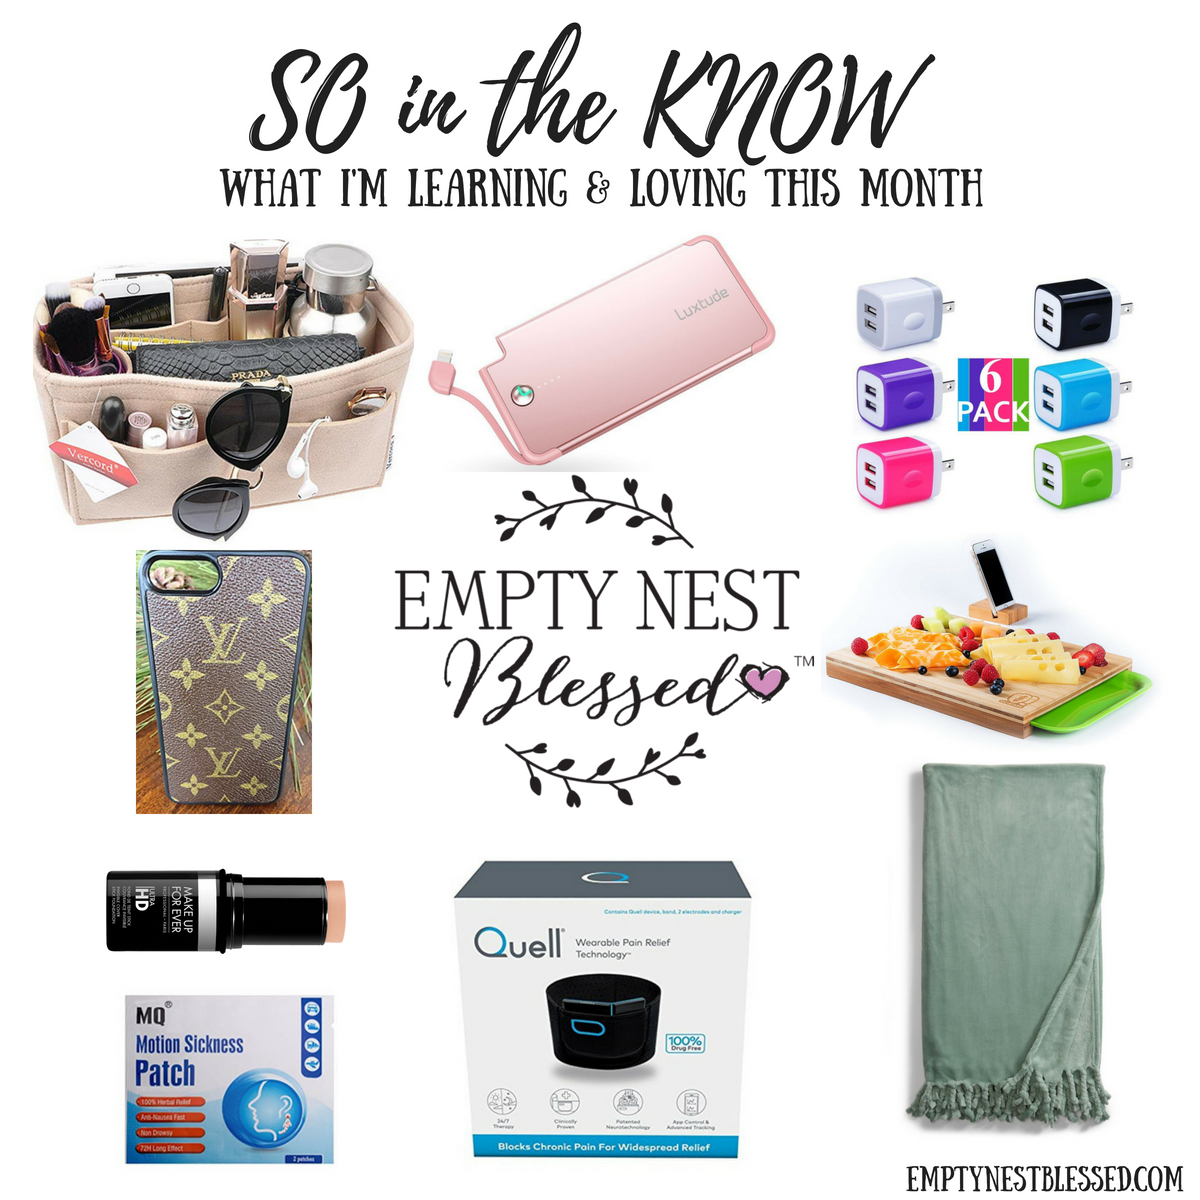 SO in the KNOW | What I'm Learning & Loving in the Empty Nest in July